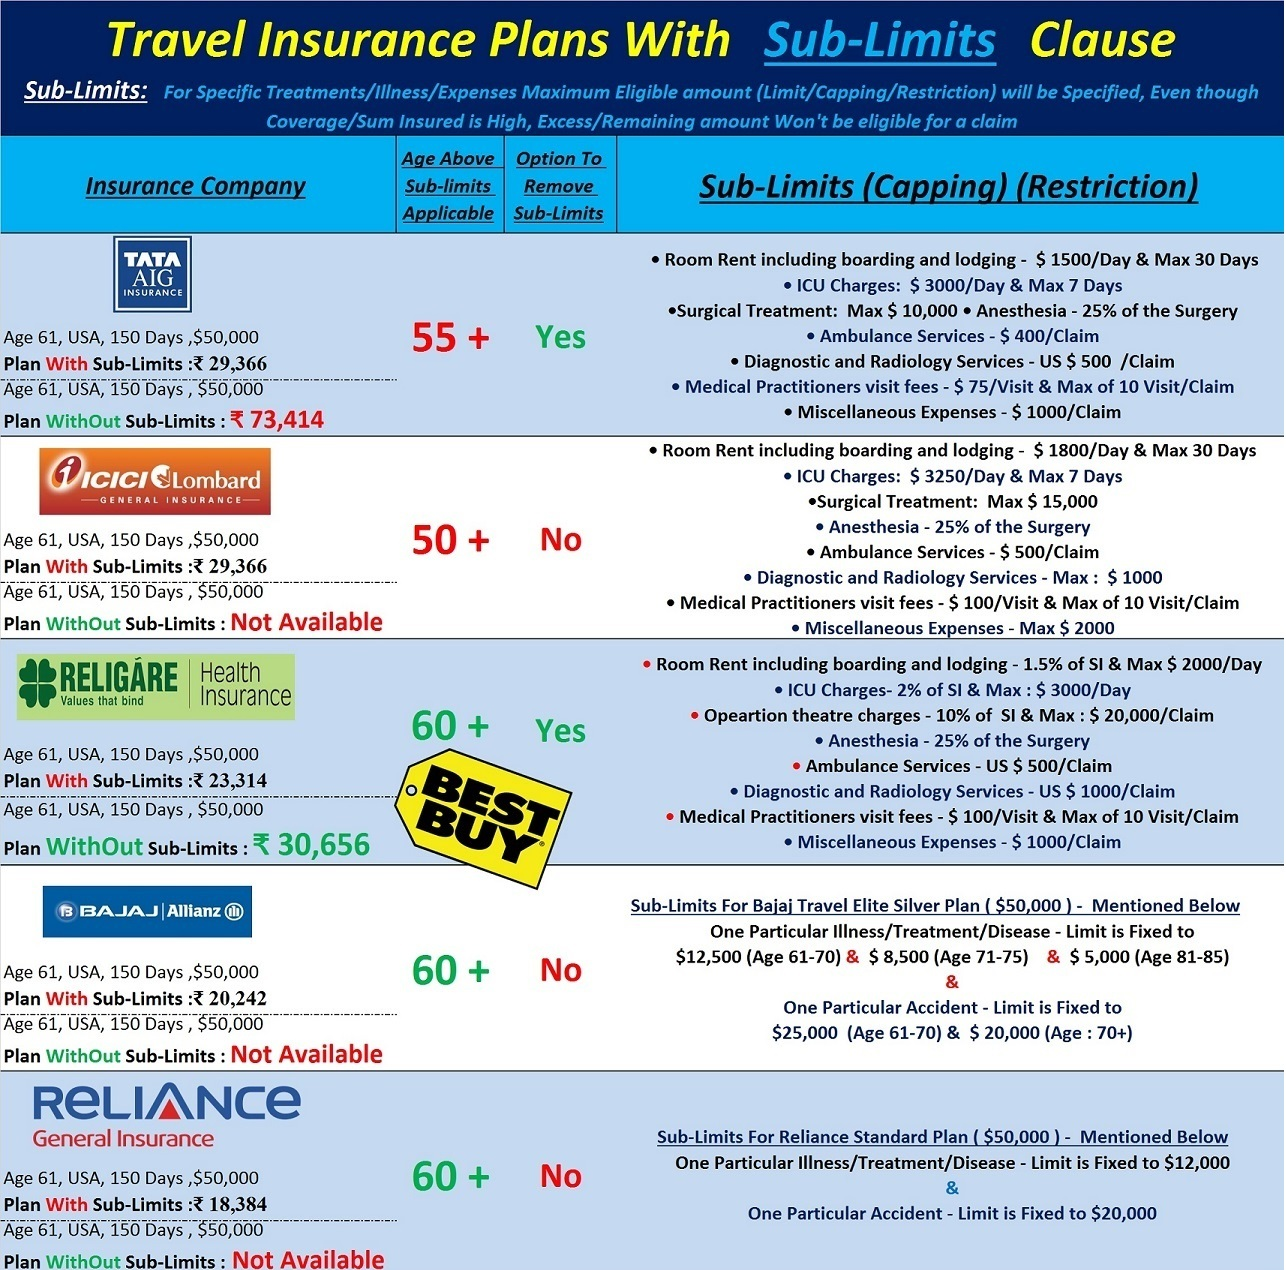 Buy travel insurance online for worry-free trips this festive season